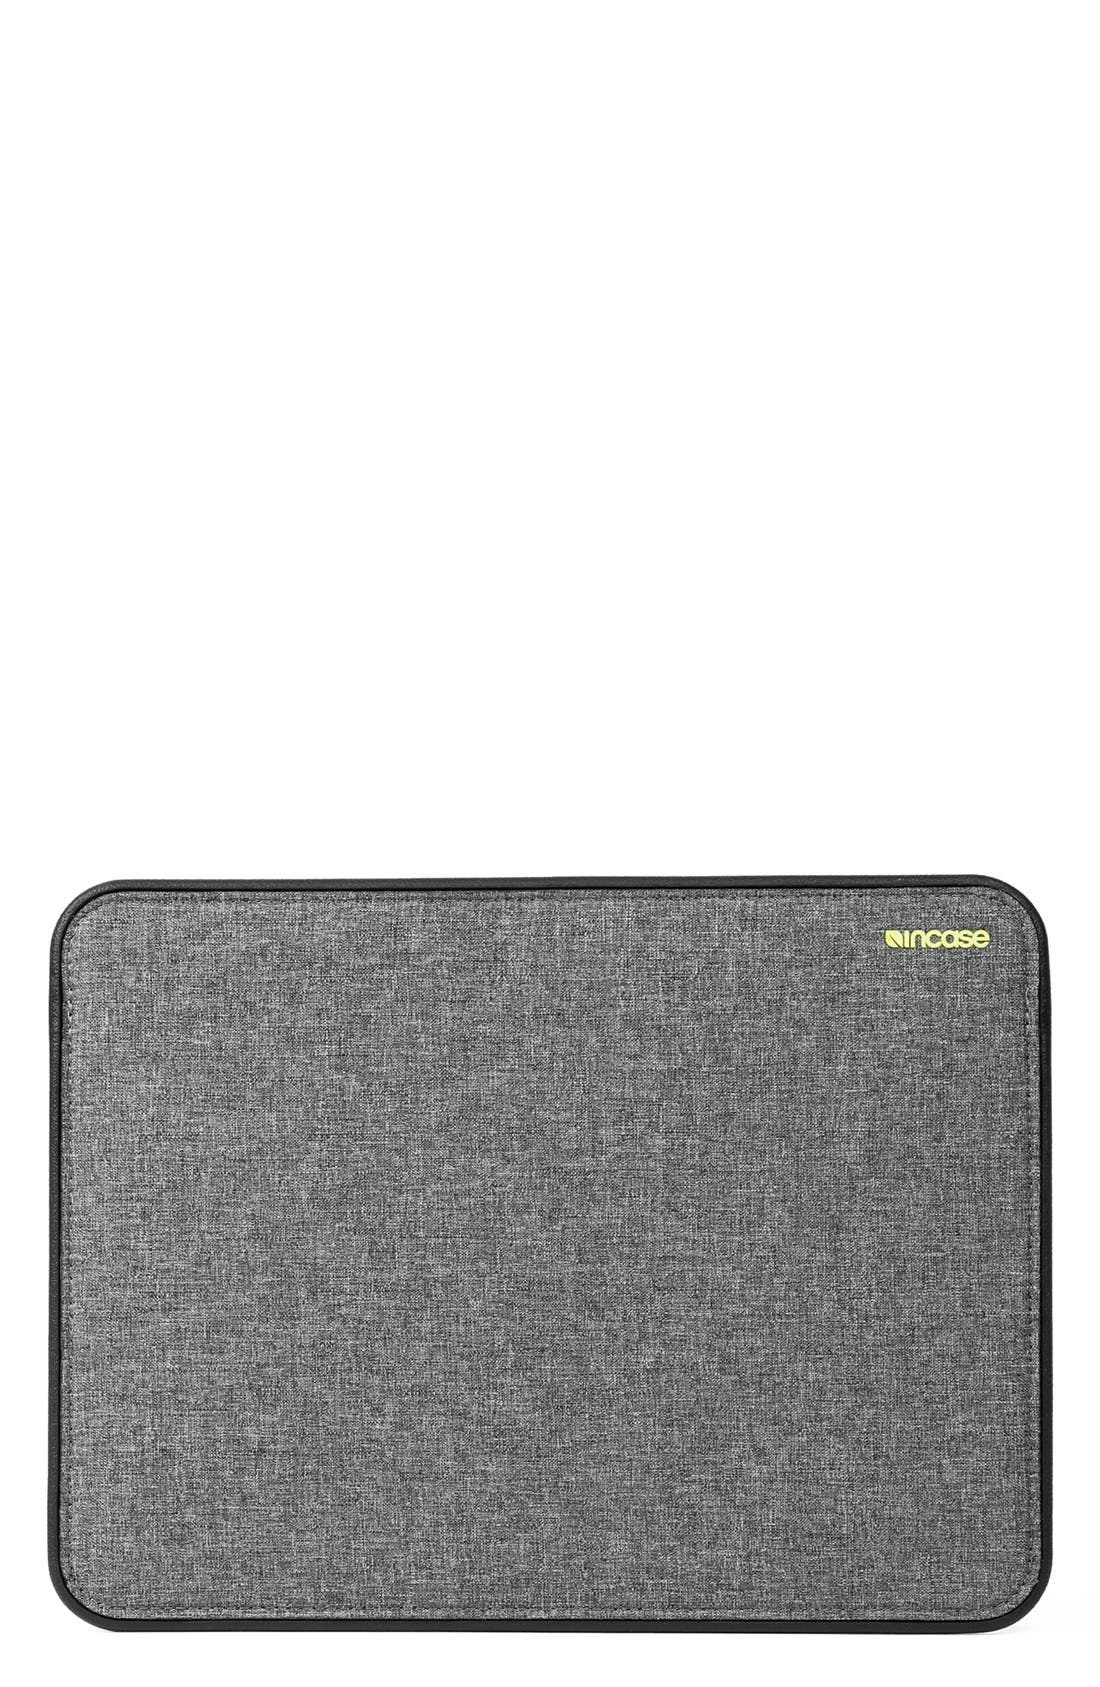 Alternate Image 1 Selected - Incase Designs 'Icon' MacBook Air Laptop Sleeve (13 Inch)